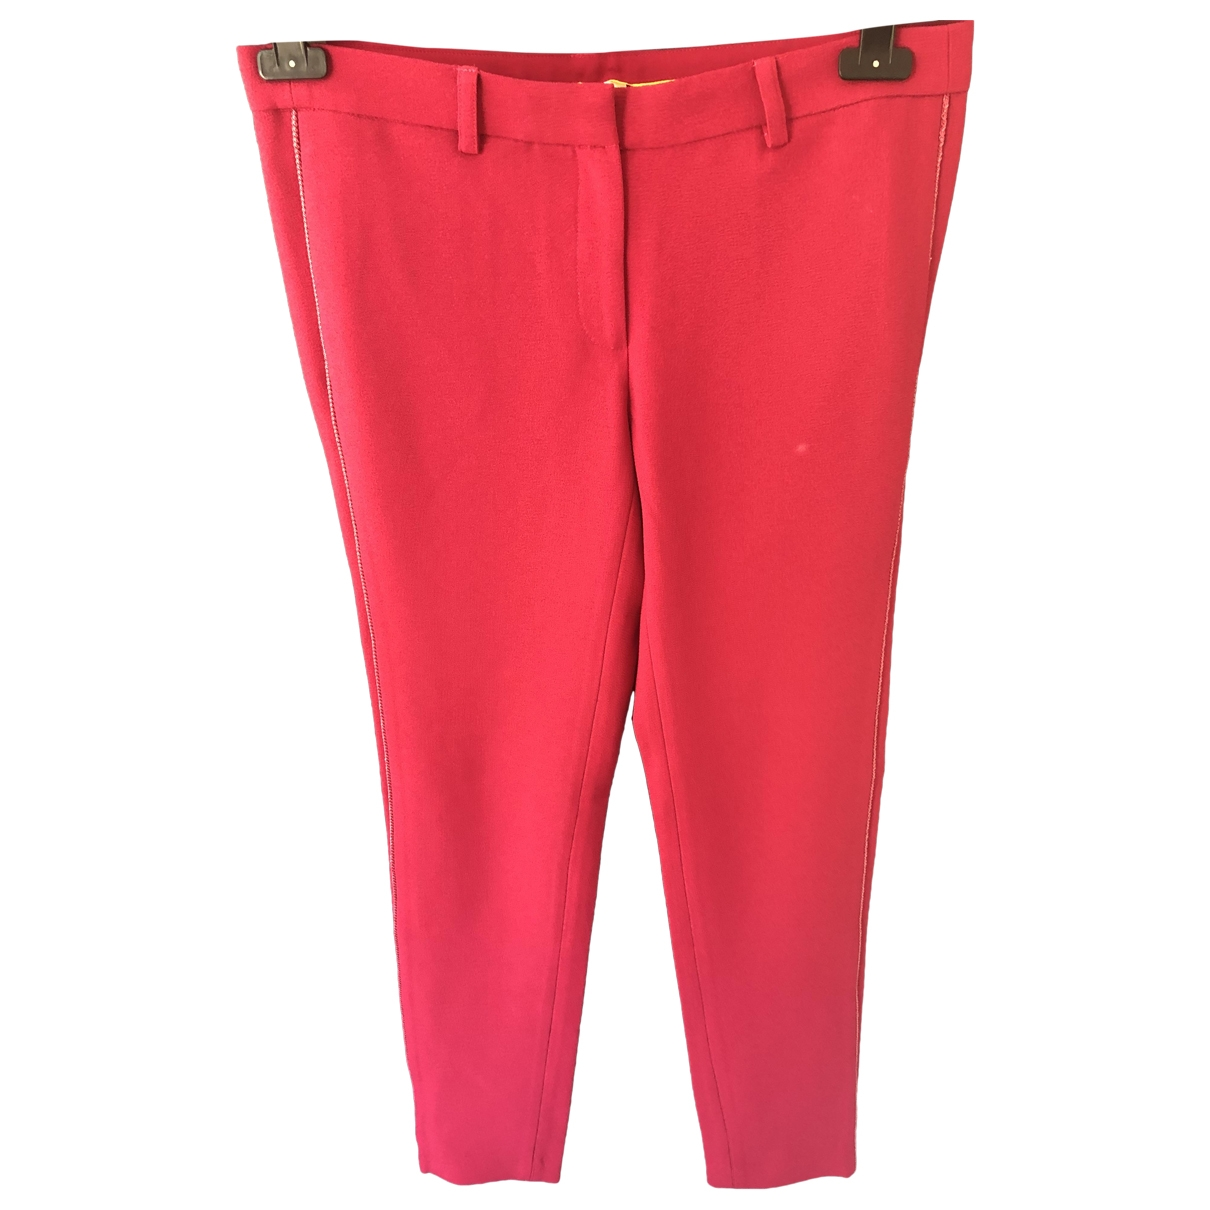 Bel Air \N Pink Trousers for Women 40 FR